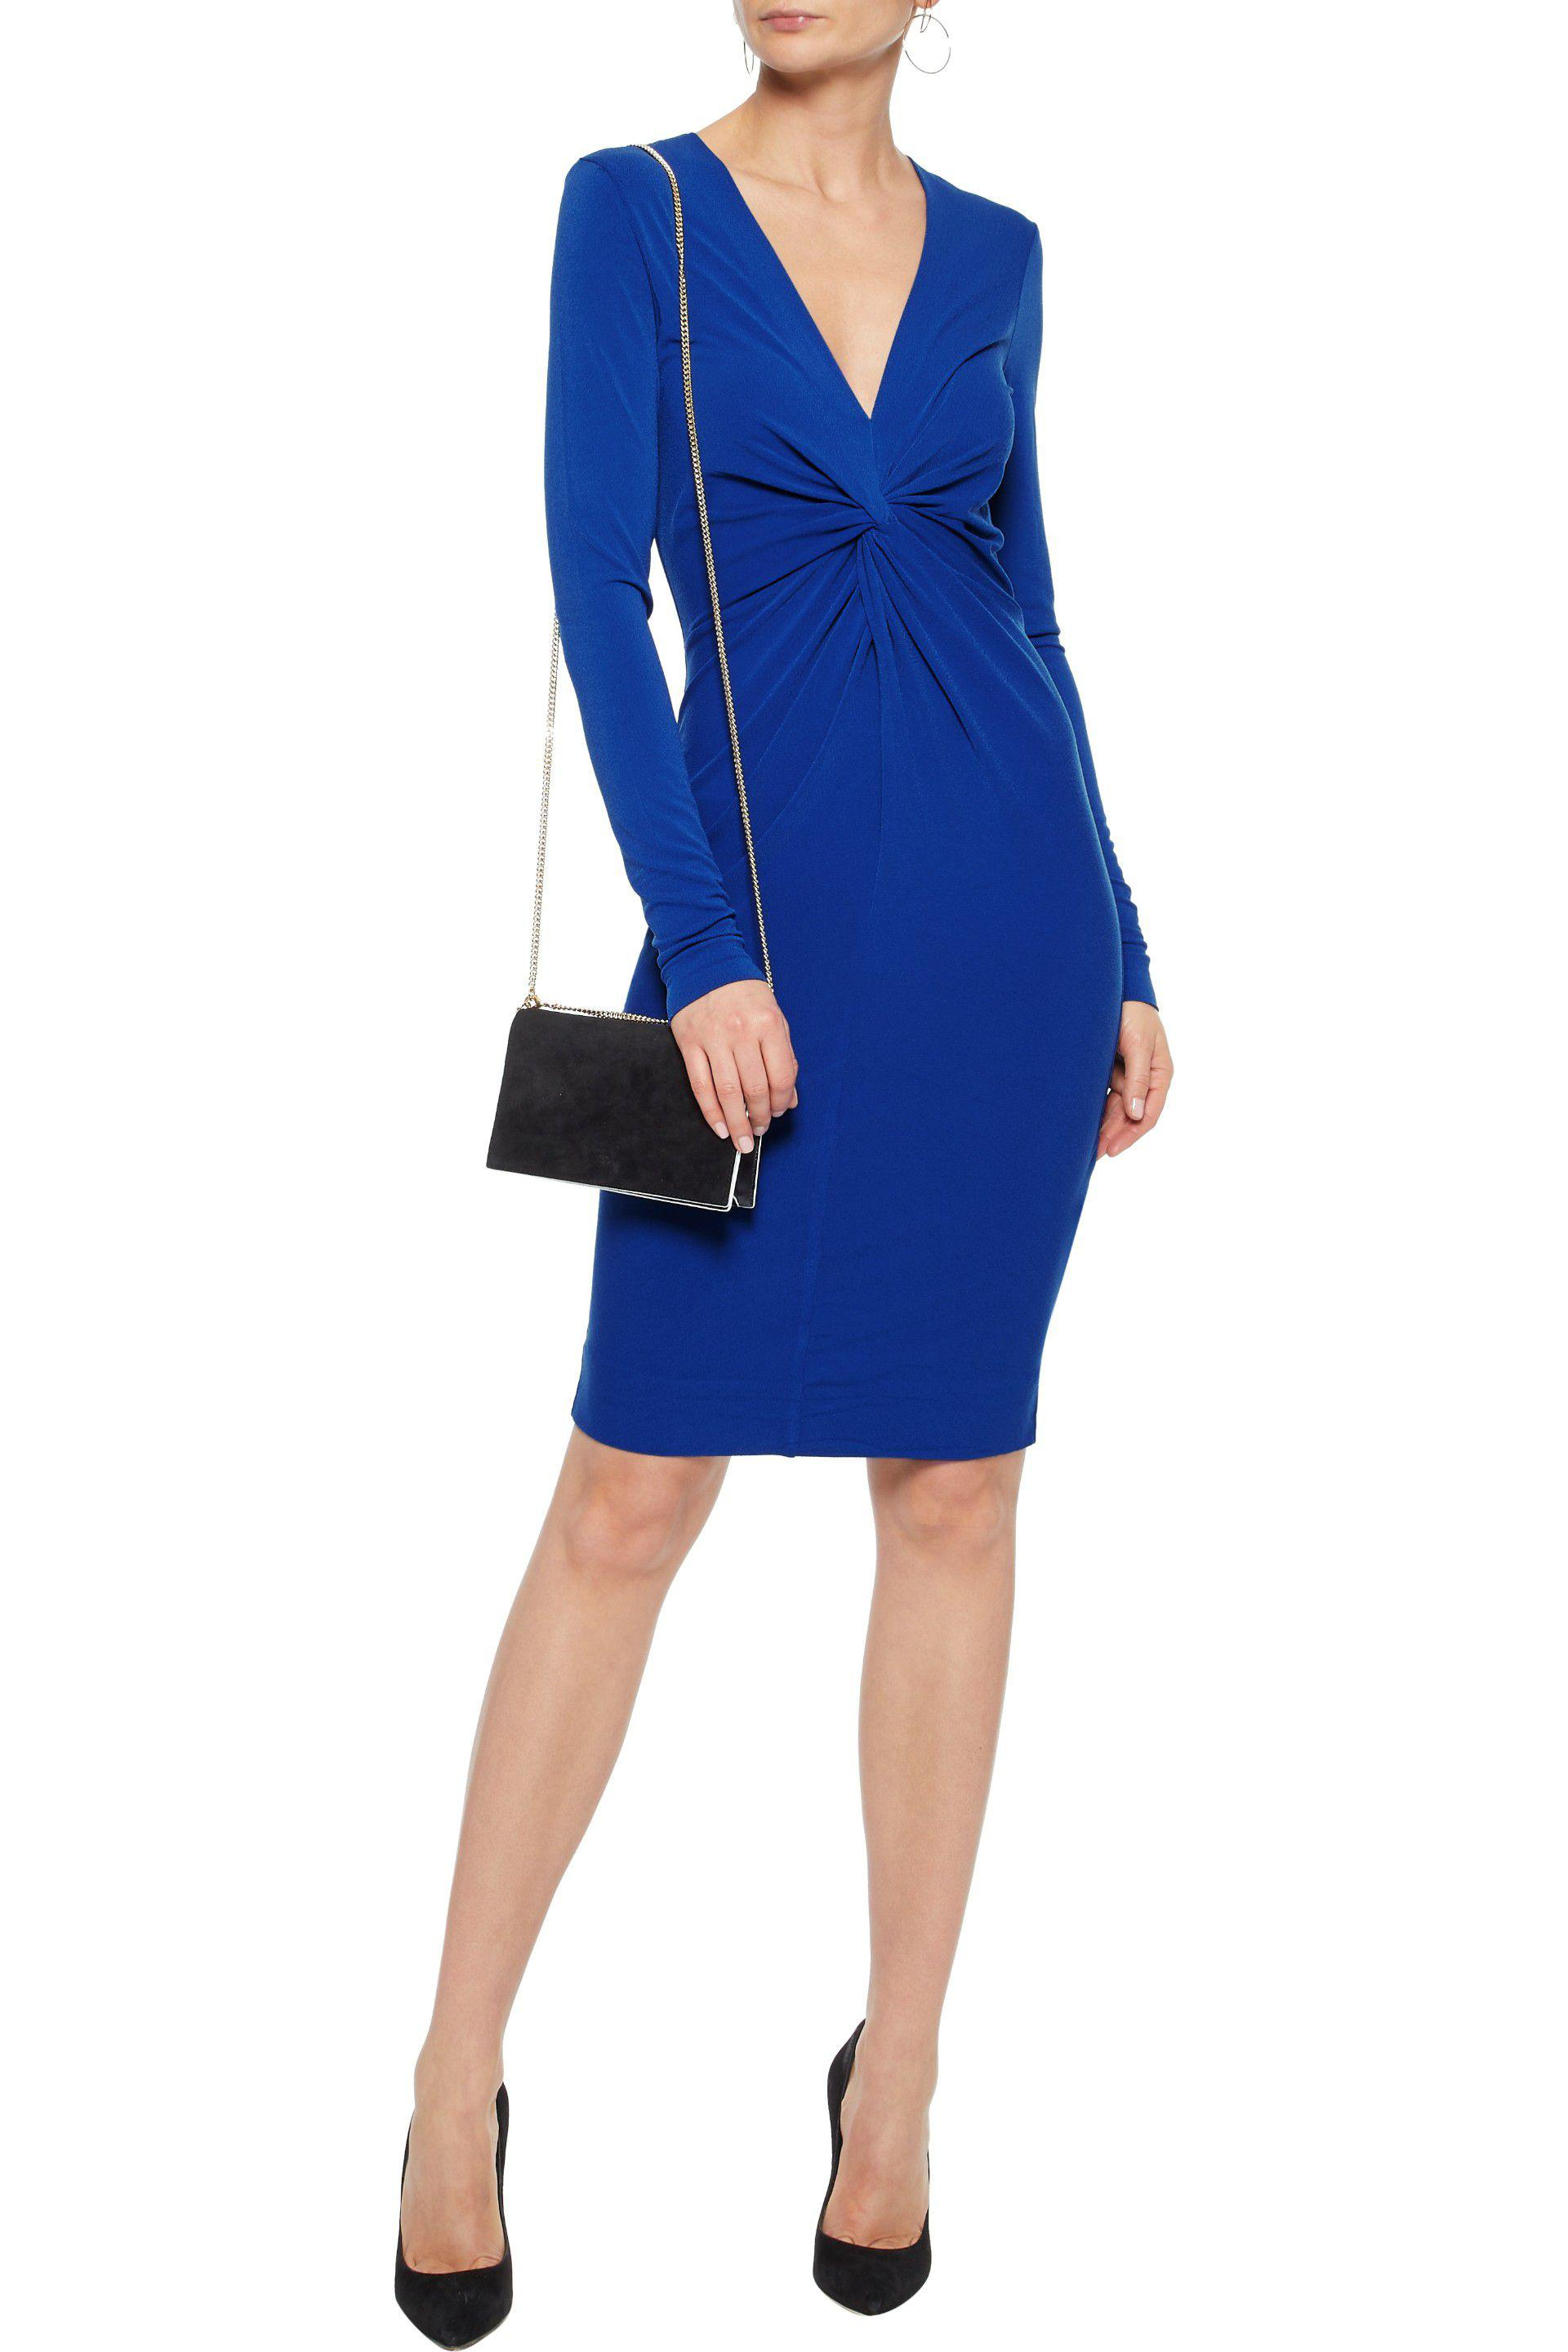 By Malene Birger Woman Knotted Crepe Dress Royal Blue Size M By Malene Birger Sjf4x5DDy